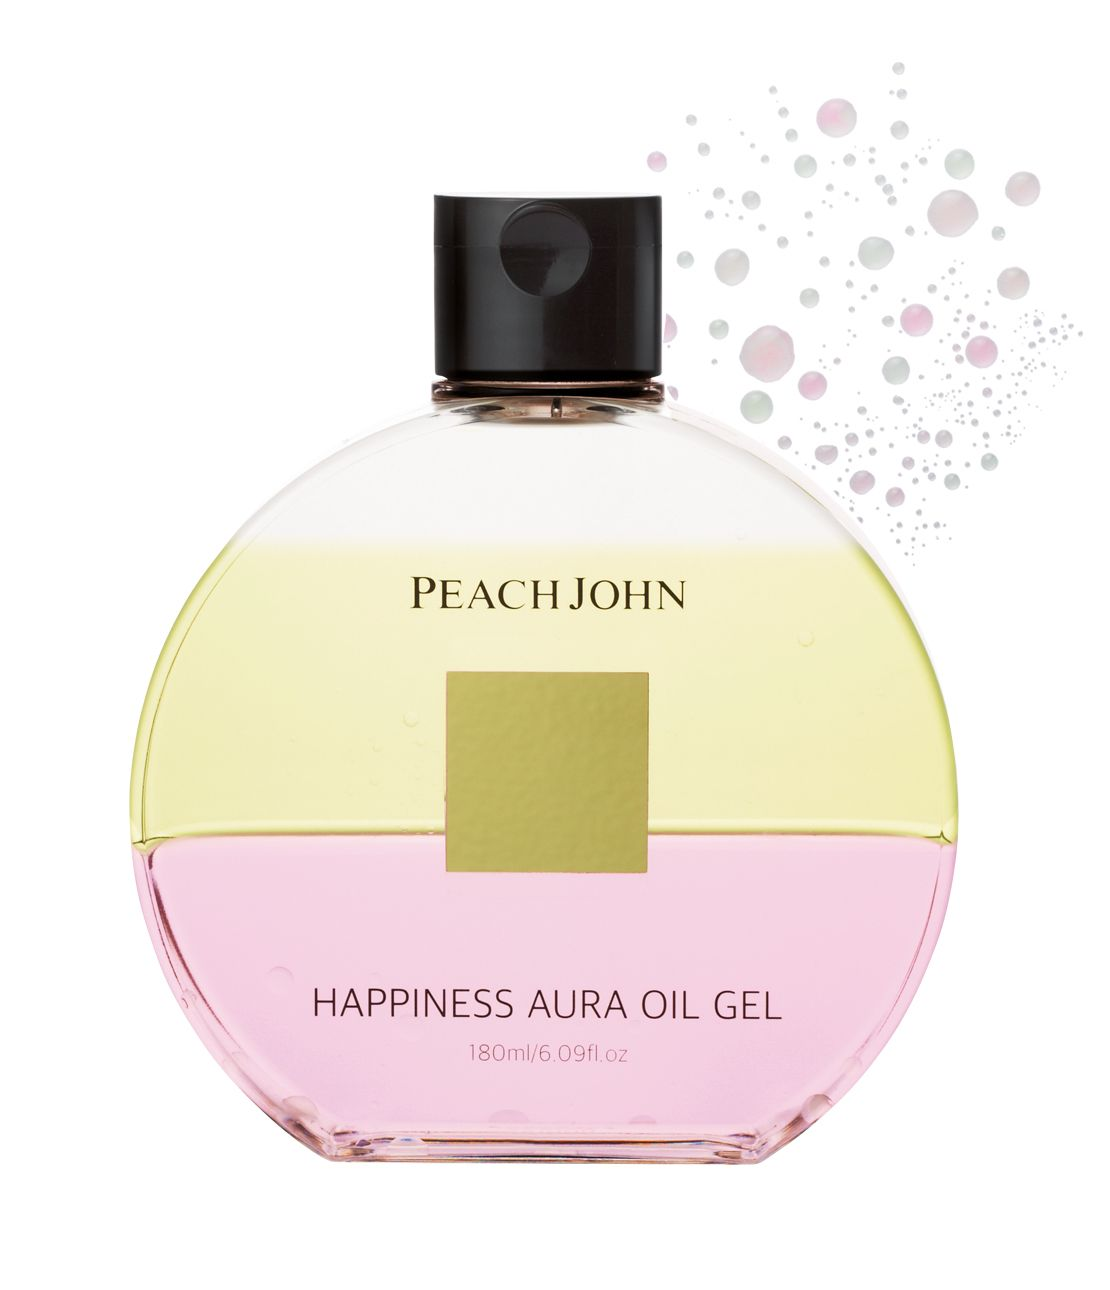 Happiness aura oil Gel